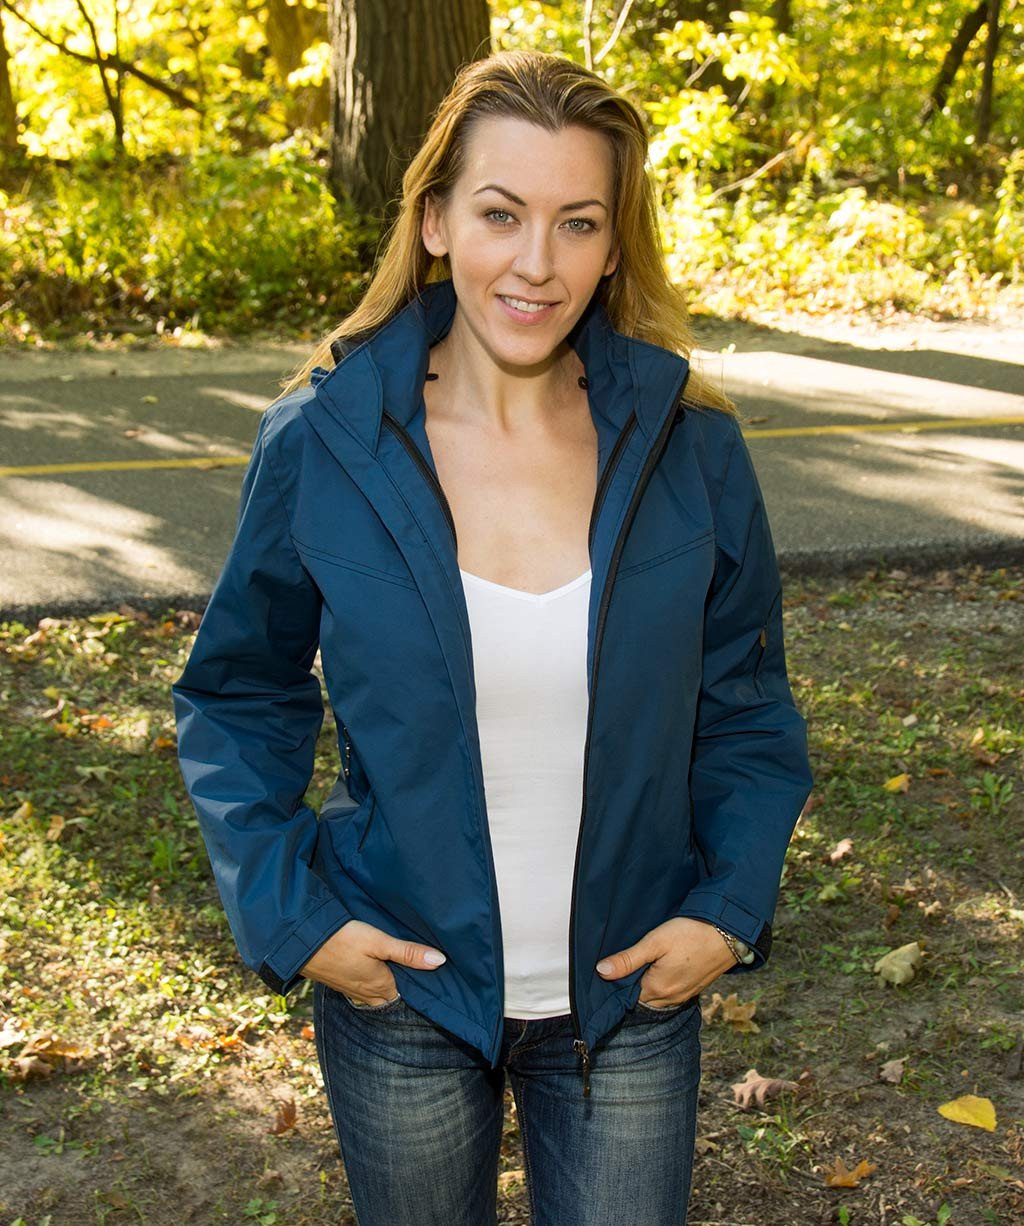 Blue women's Jacket with lots of pockets